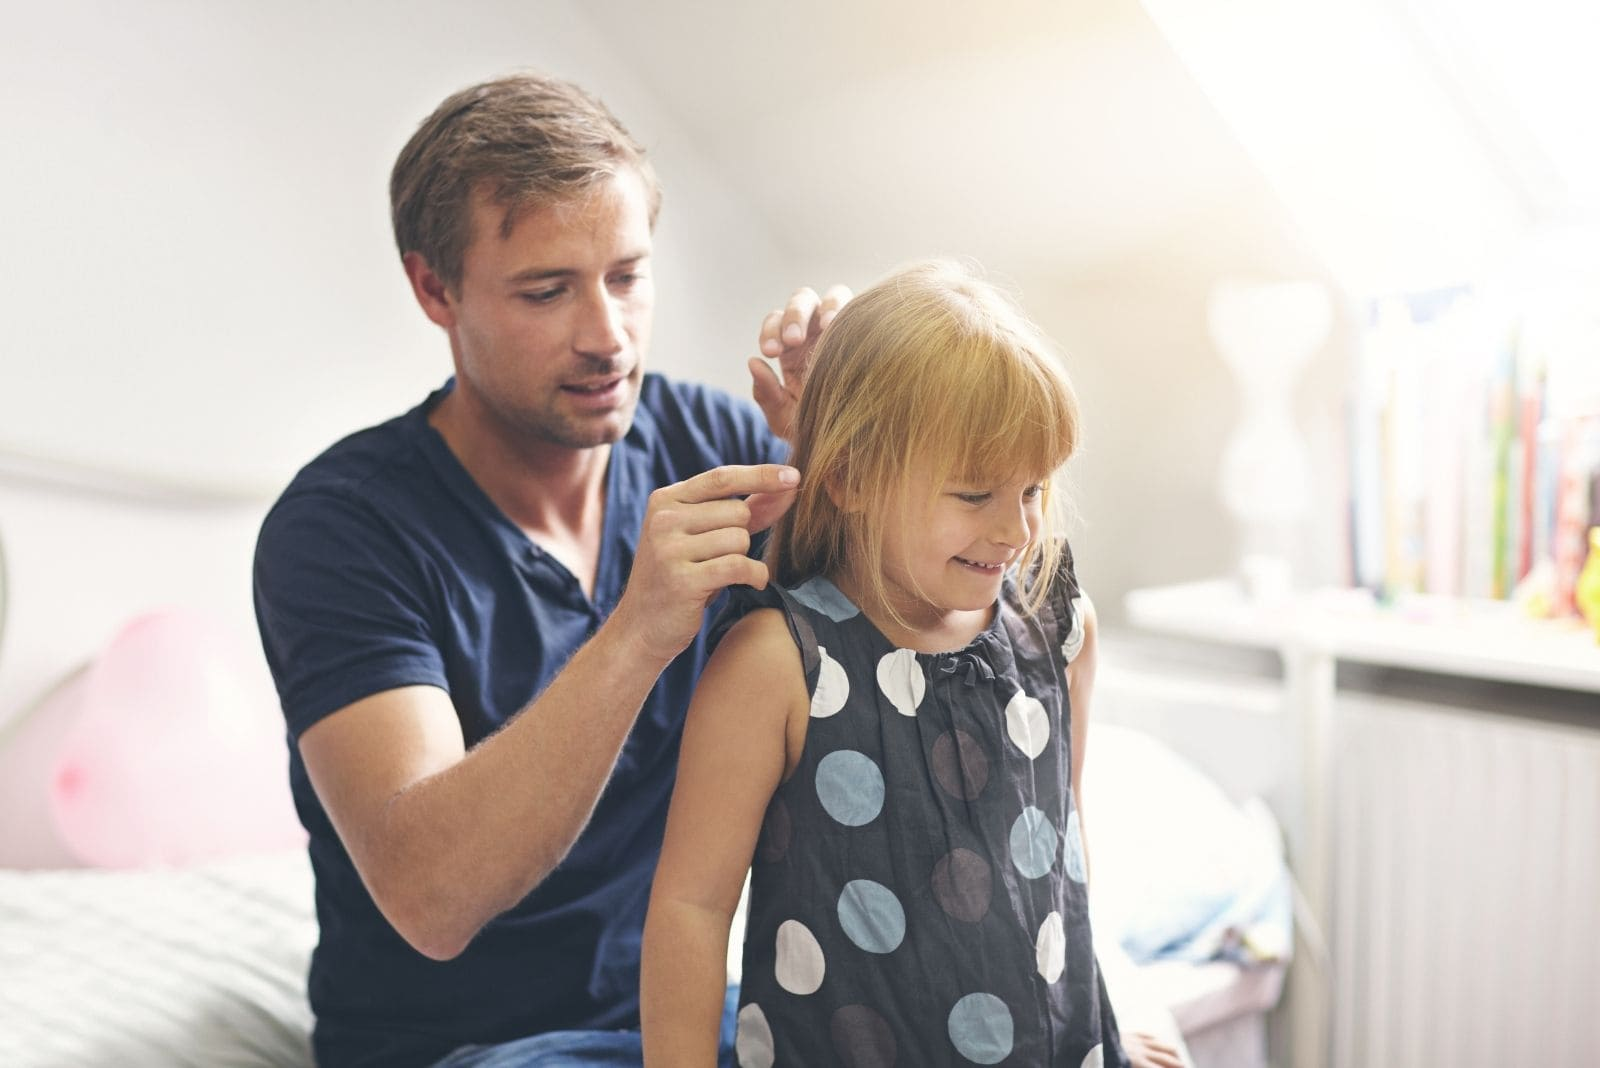 single dad keeping his daughter's hair while sitting inside the room